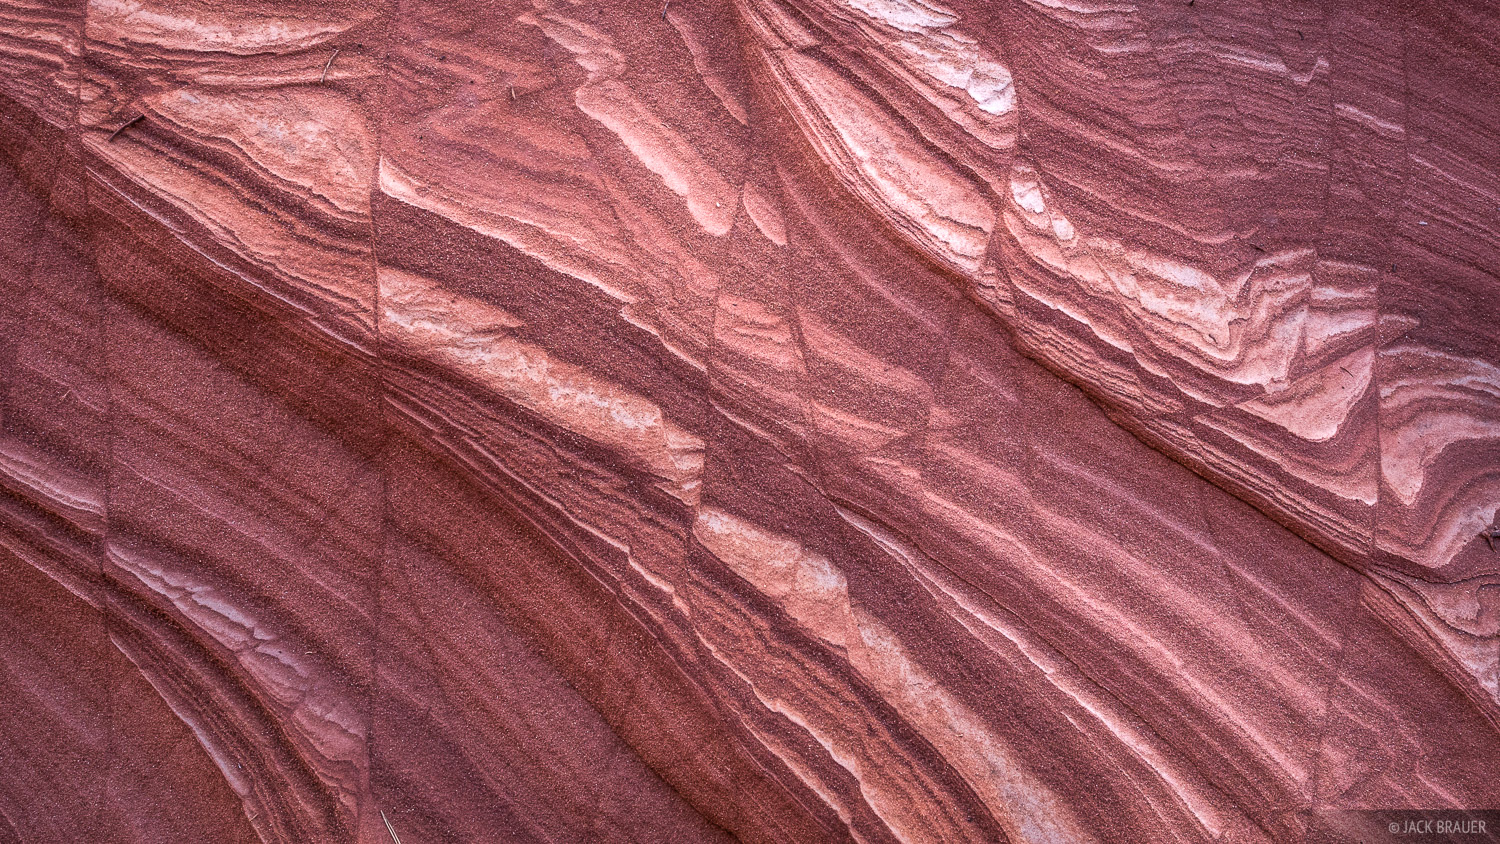 Moonshine Wash,Utah, abstract, sandstone, photo